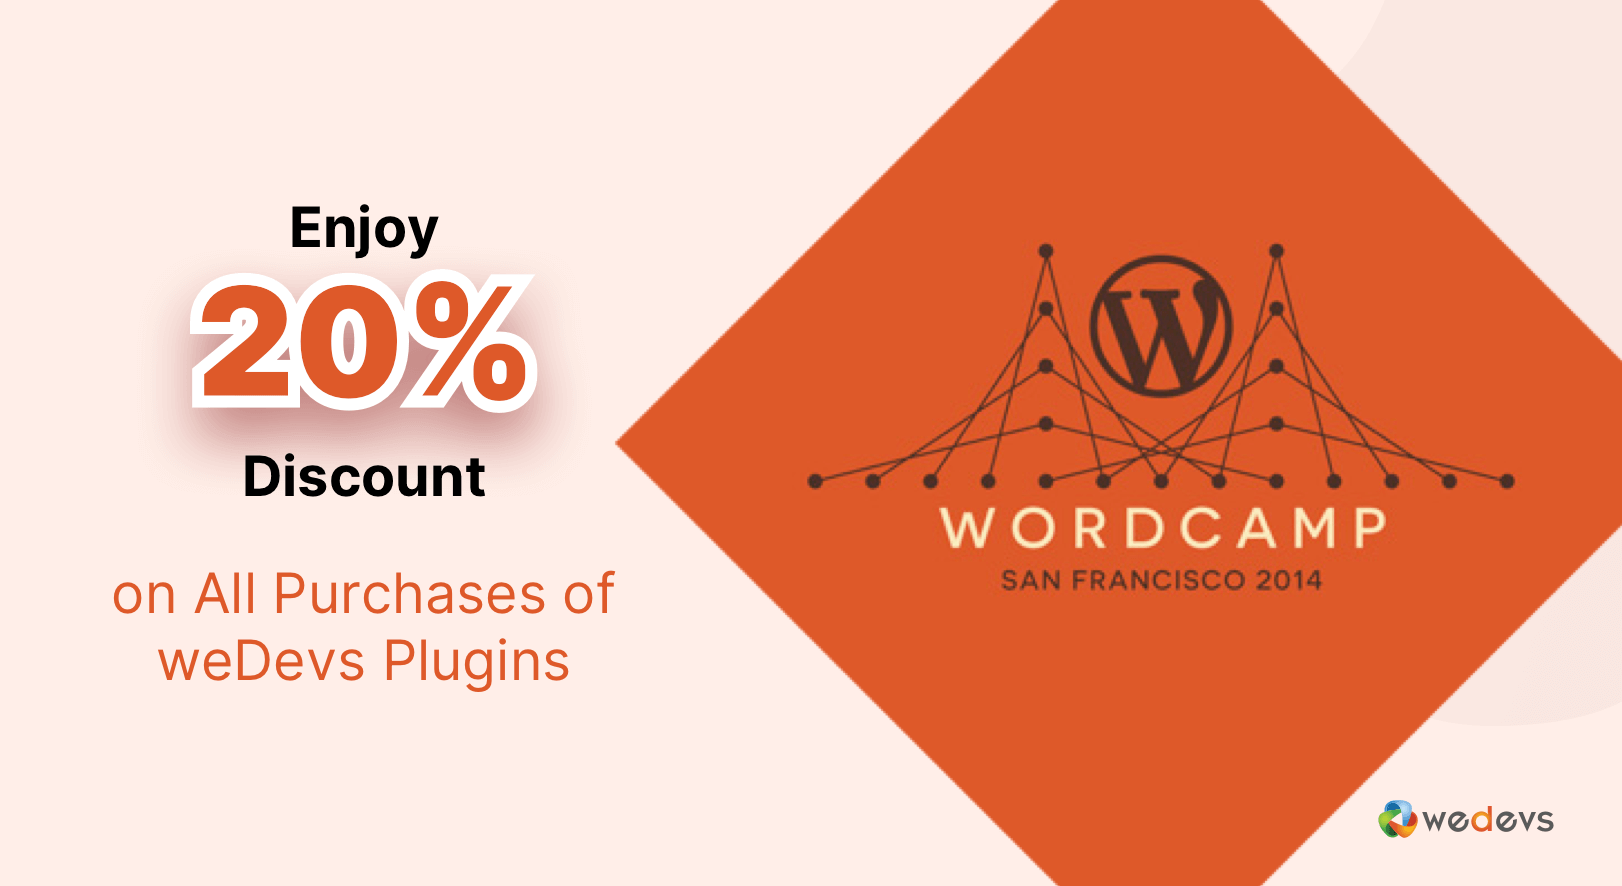 Enjoy 20% Discount on All Purchases of weDevs Plugins during WordCamp San Francisco